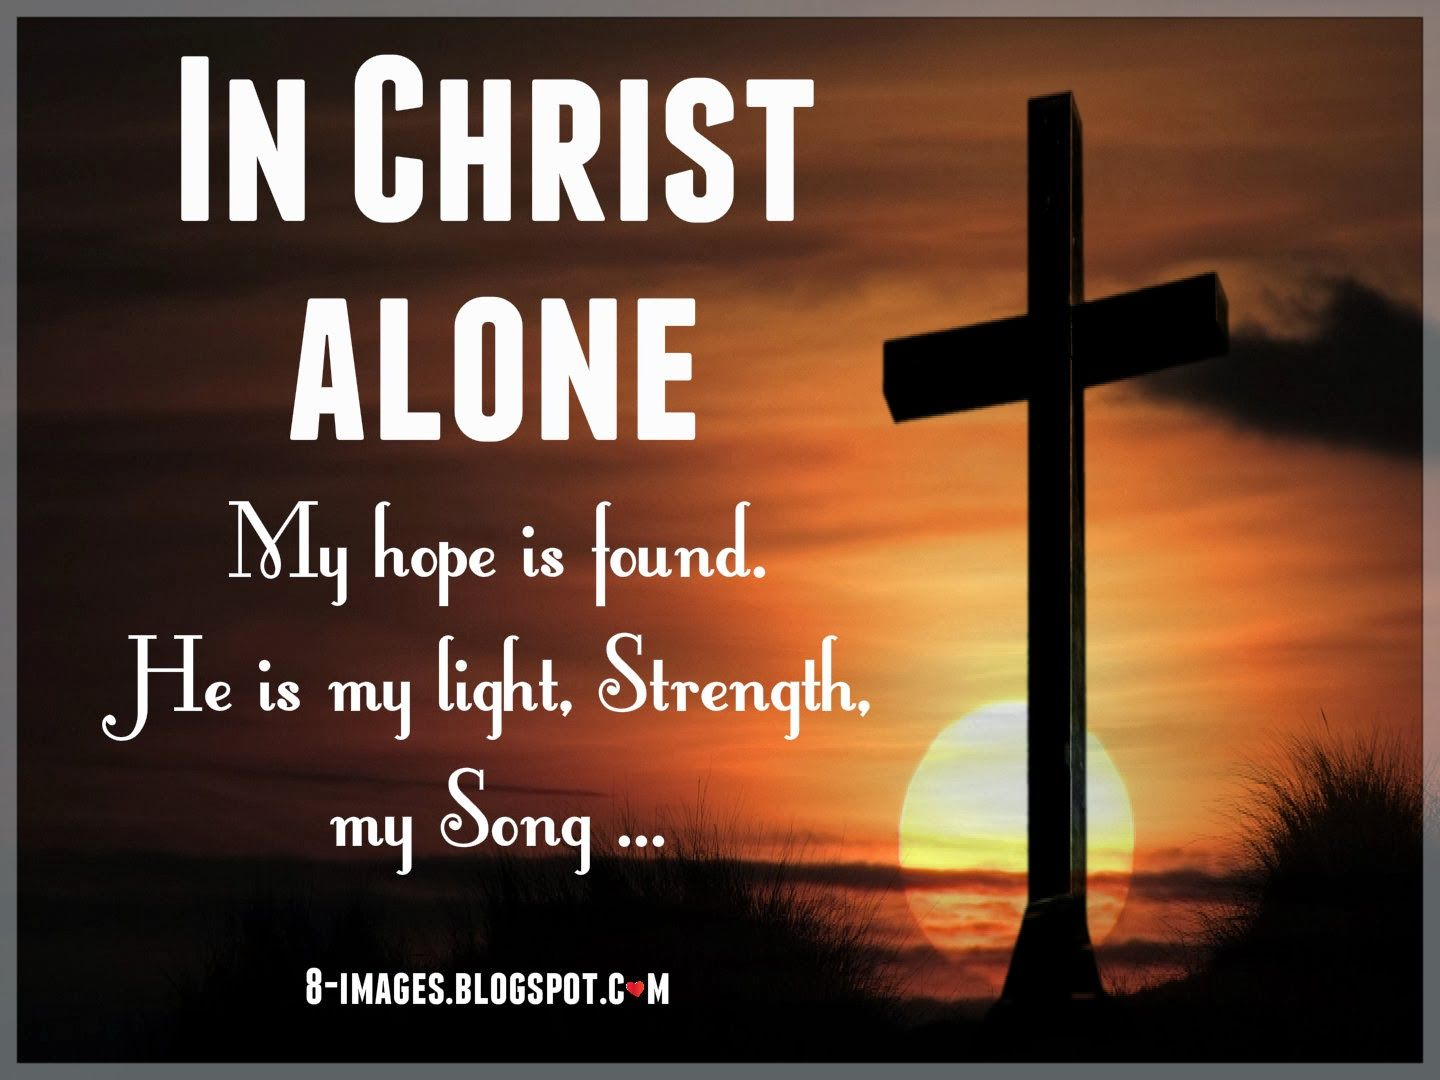 In Christ alone my hope is found, He is my light, Strength ...